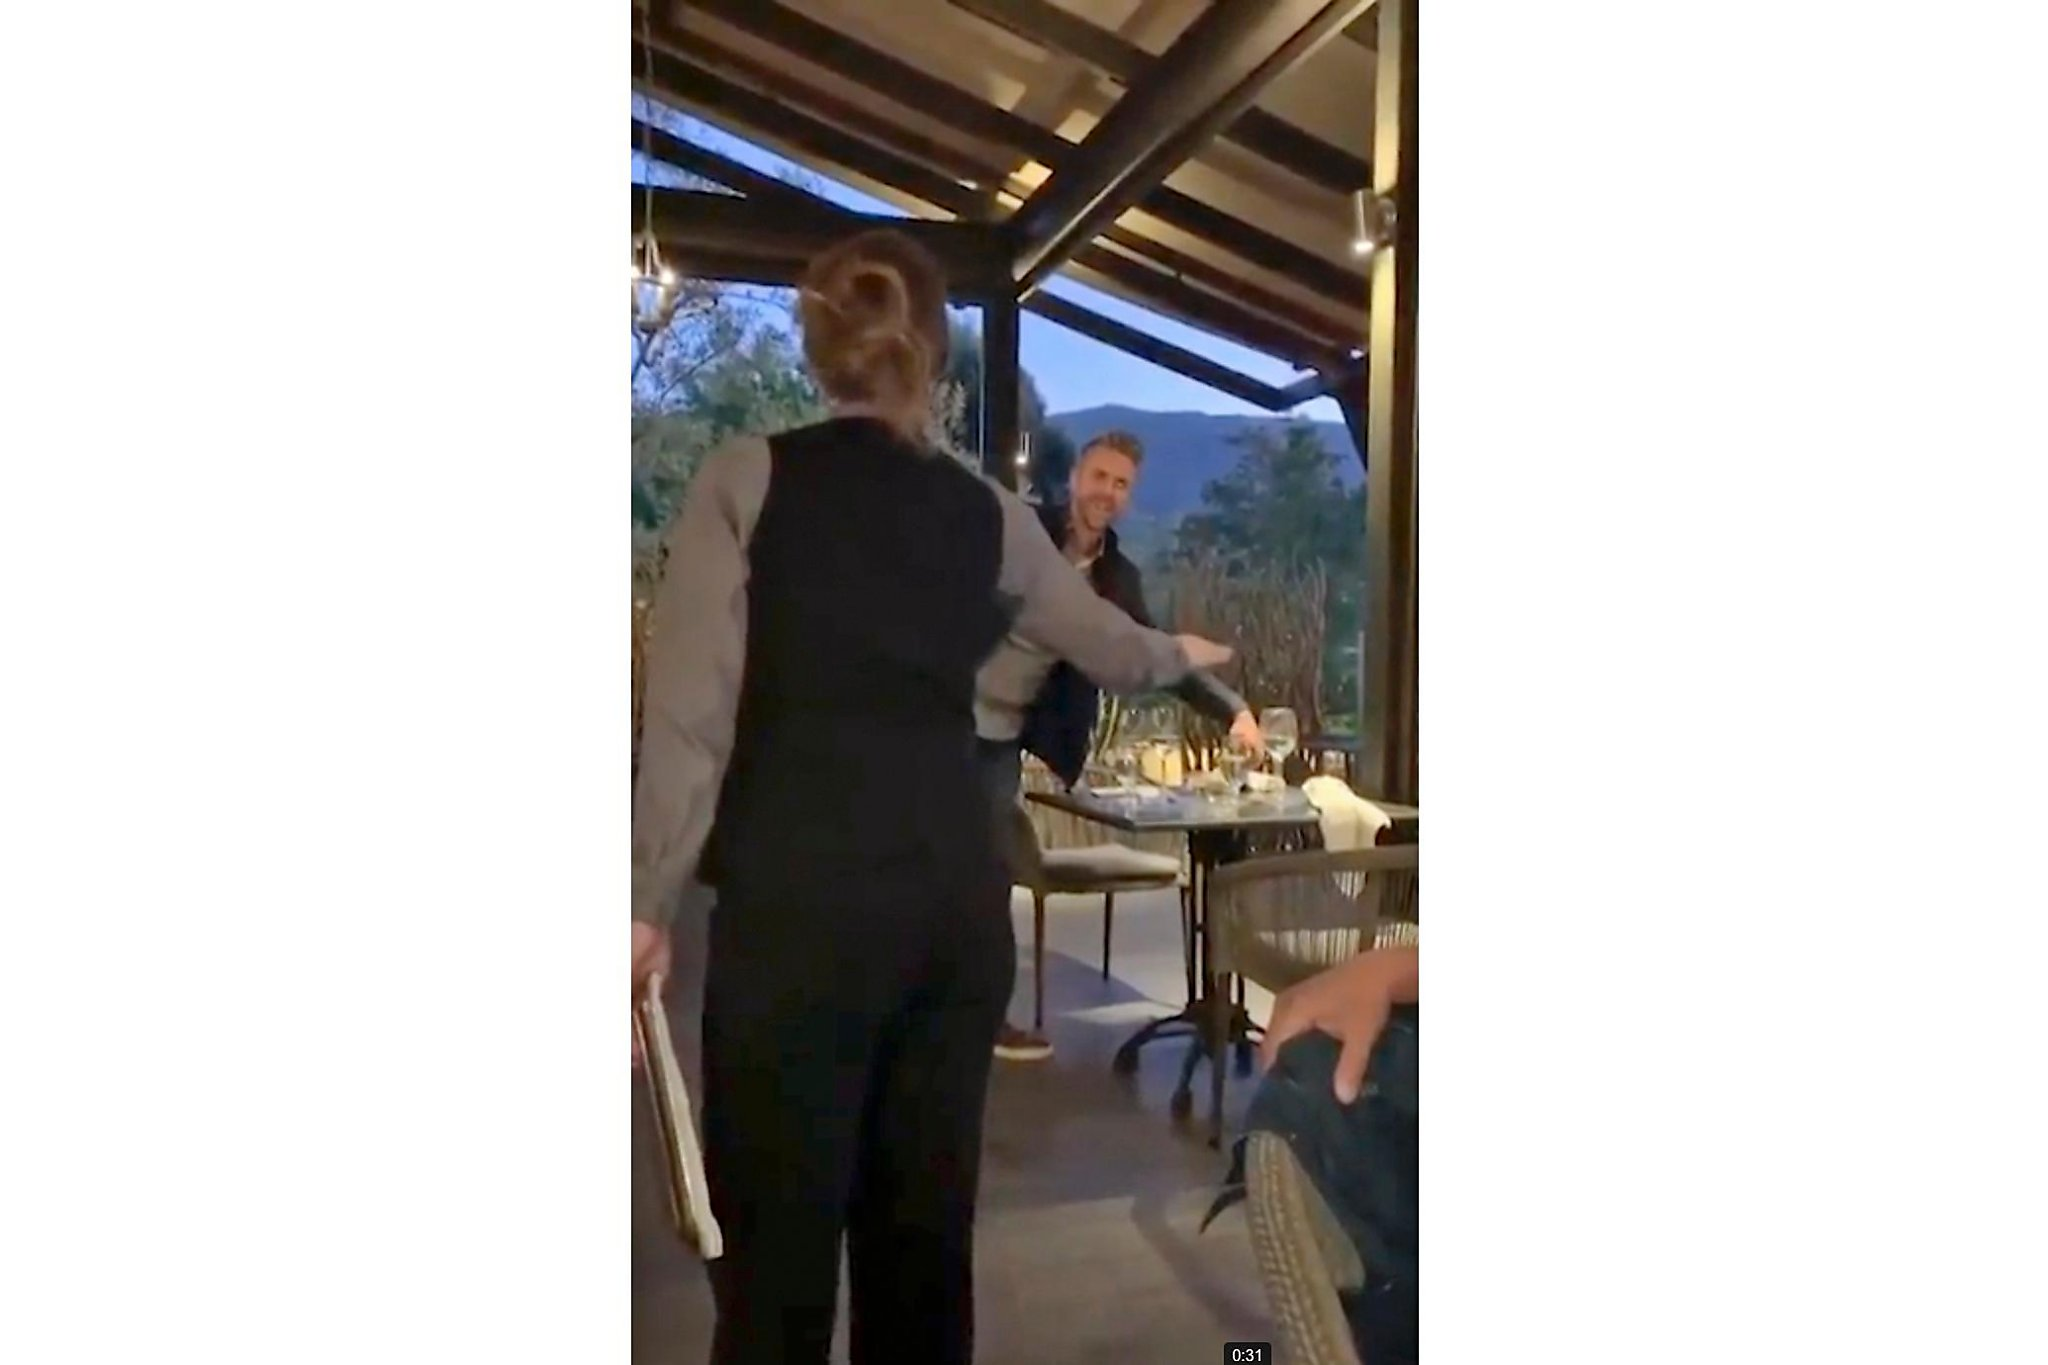 Tech CEO resigns after video shows racist rant in California restaurant